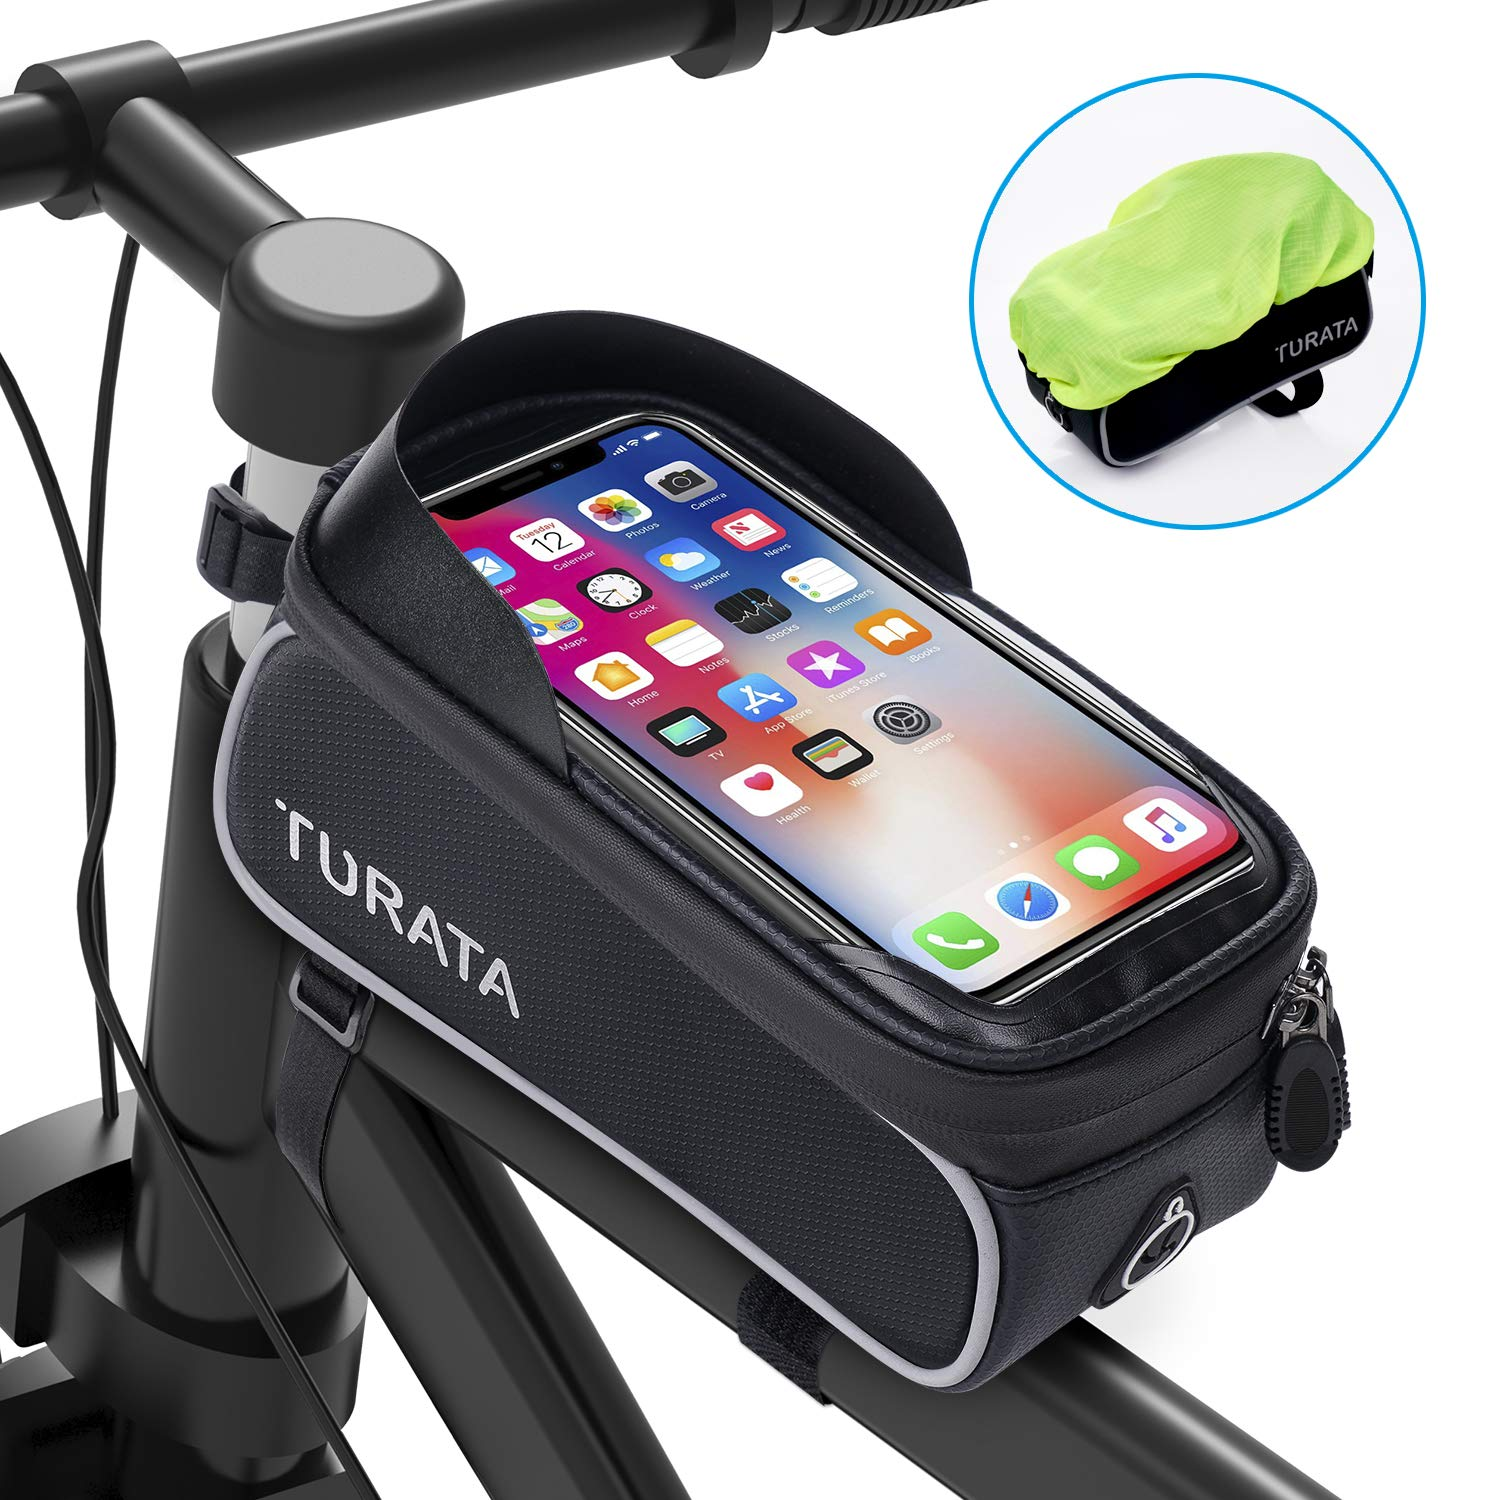 Bike Frame Bag Waterproof Bike Pouch Bag Large Capacity Bicycle Phone Bag with Touchscreen Sun Visor for iPhone Samsung and other Smartphones Under 6.5